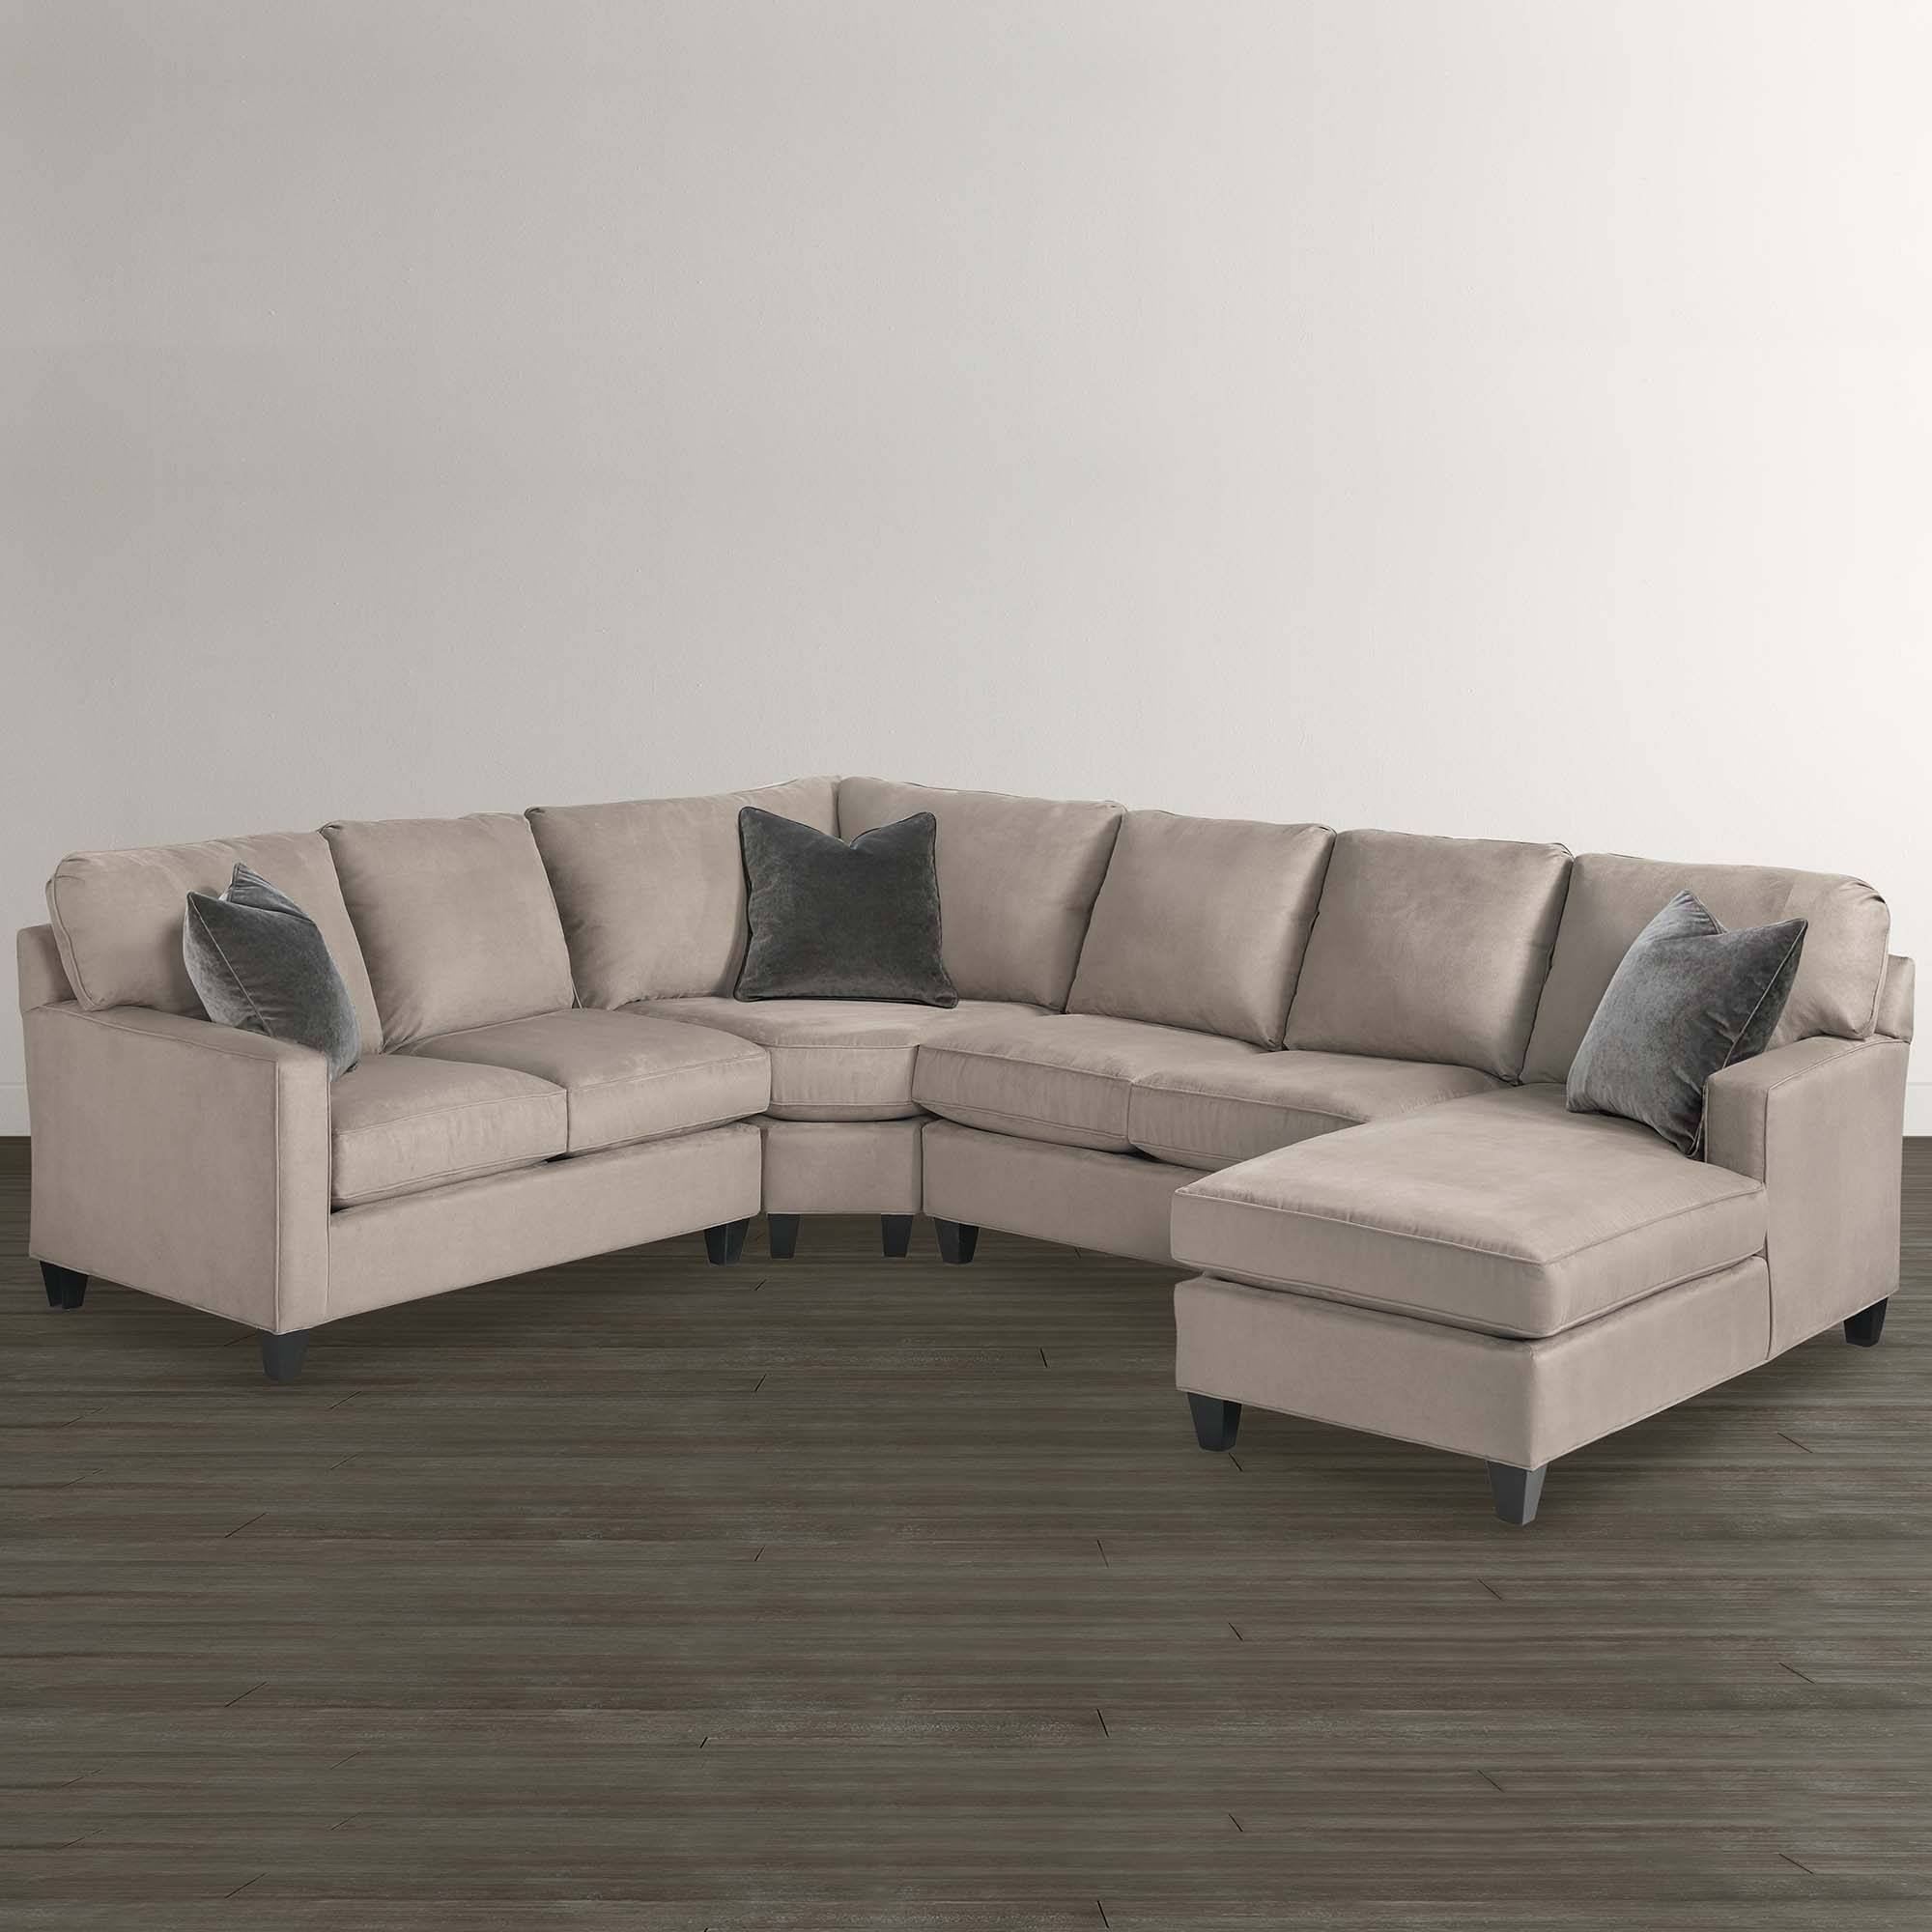 A Sectional Sofa Collection With Something For Everyone with regard to U Shaped Leather Sectional Sofa (Image 1 of 25)